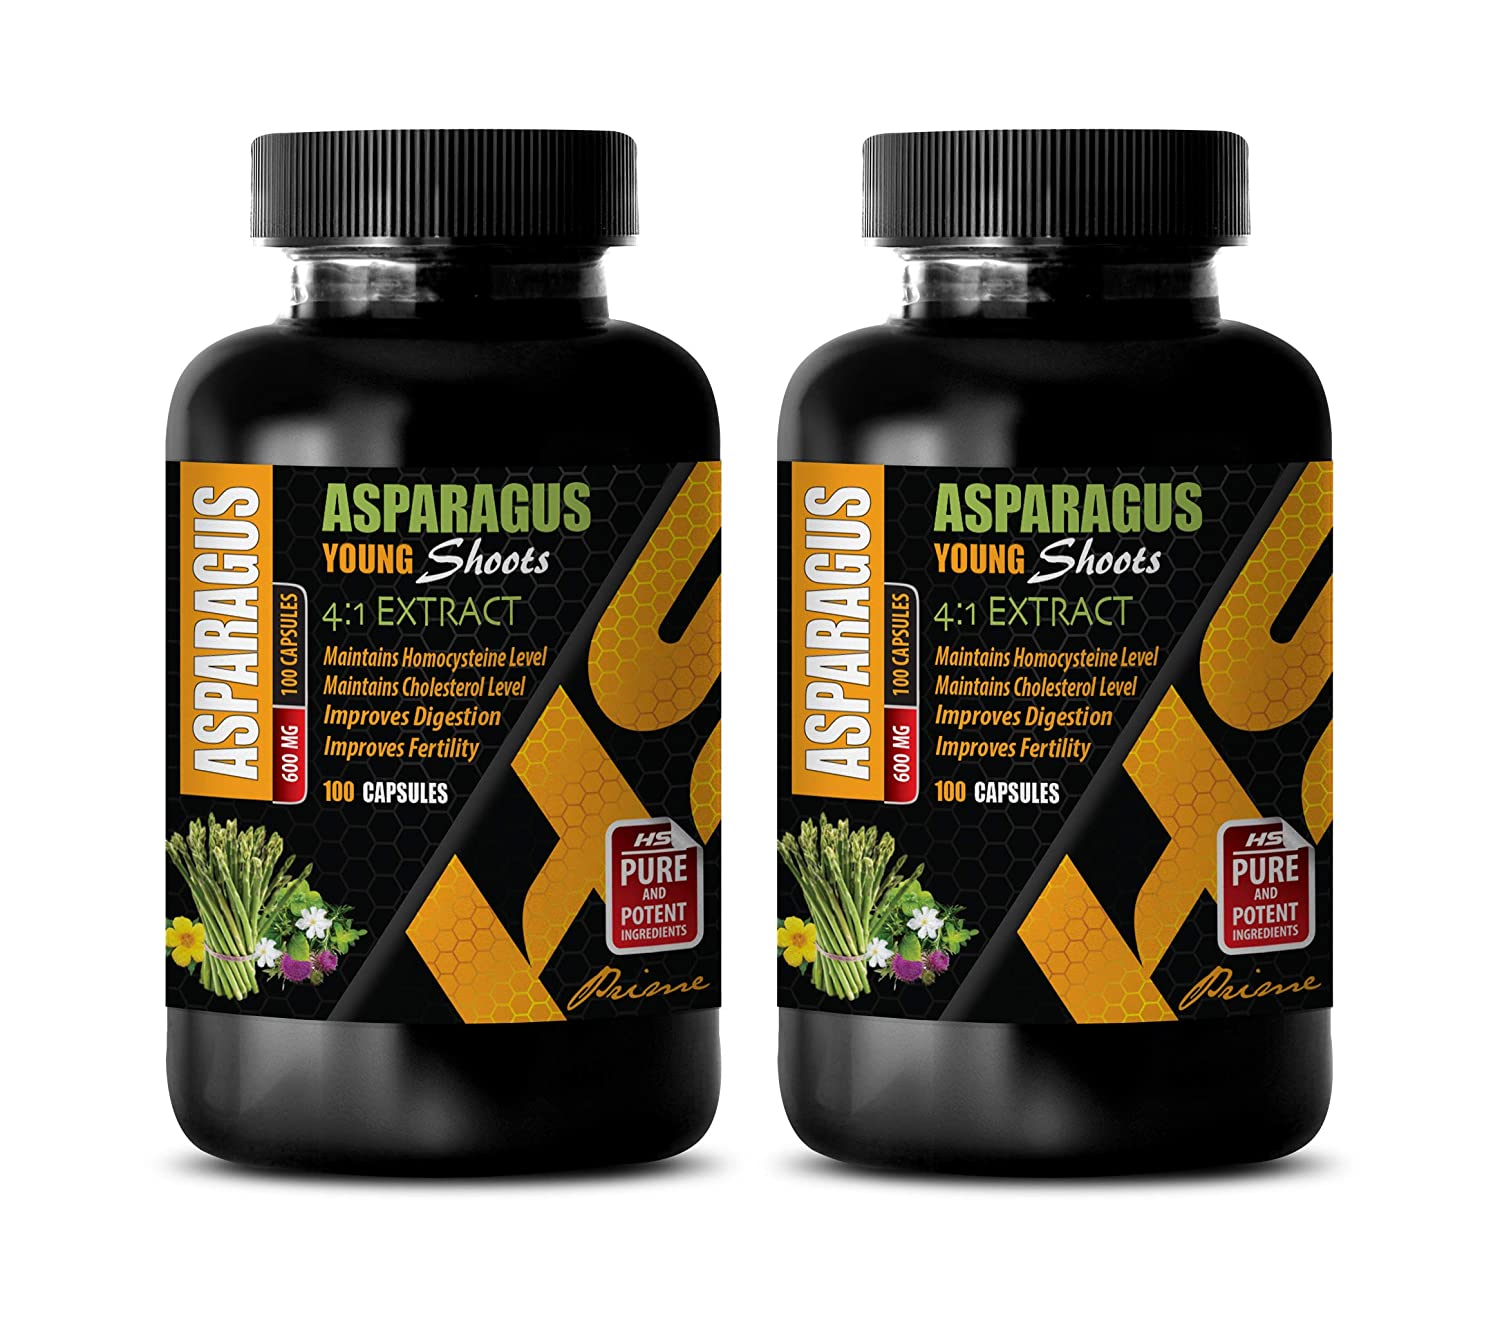 Memory Vitamins Brain - Asparagus Young Shoots 4:1 Extract 600 MG - antioxidant Powder Supplement - 2 Bottles 200 Capsules